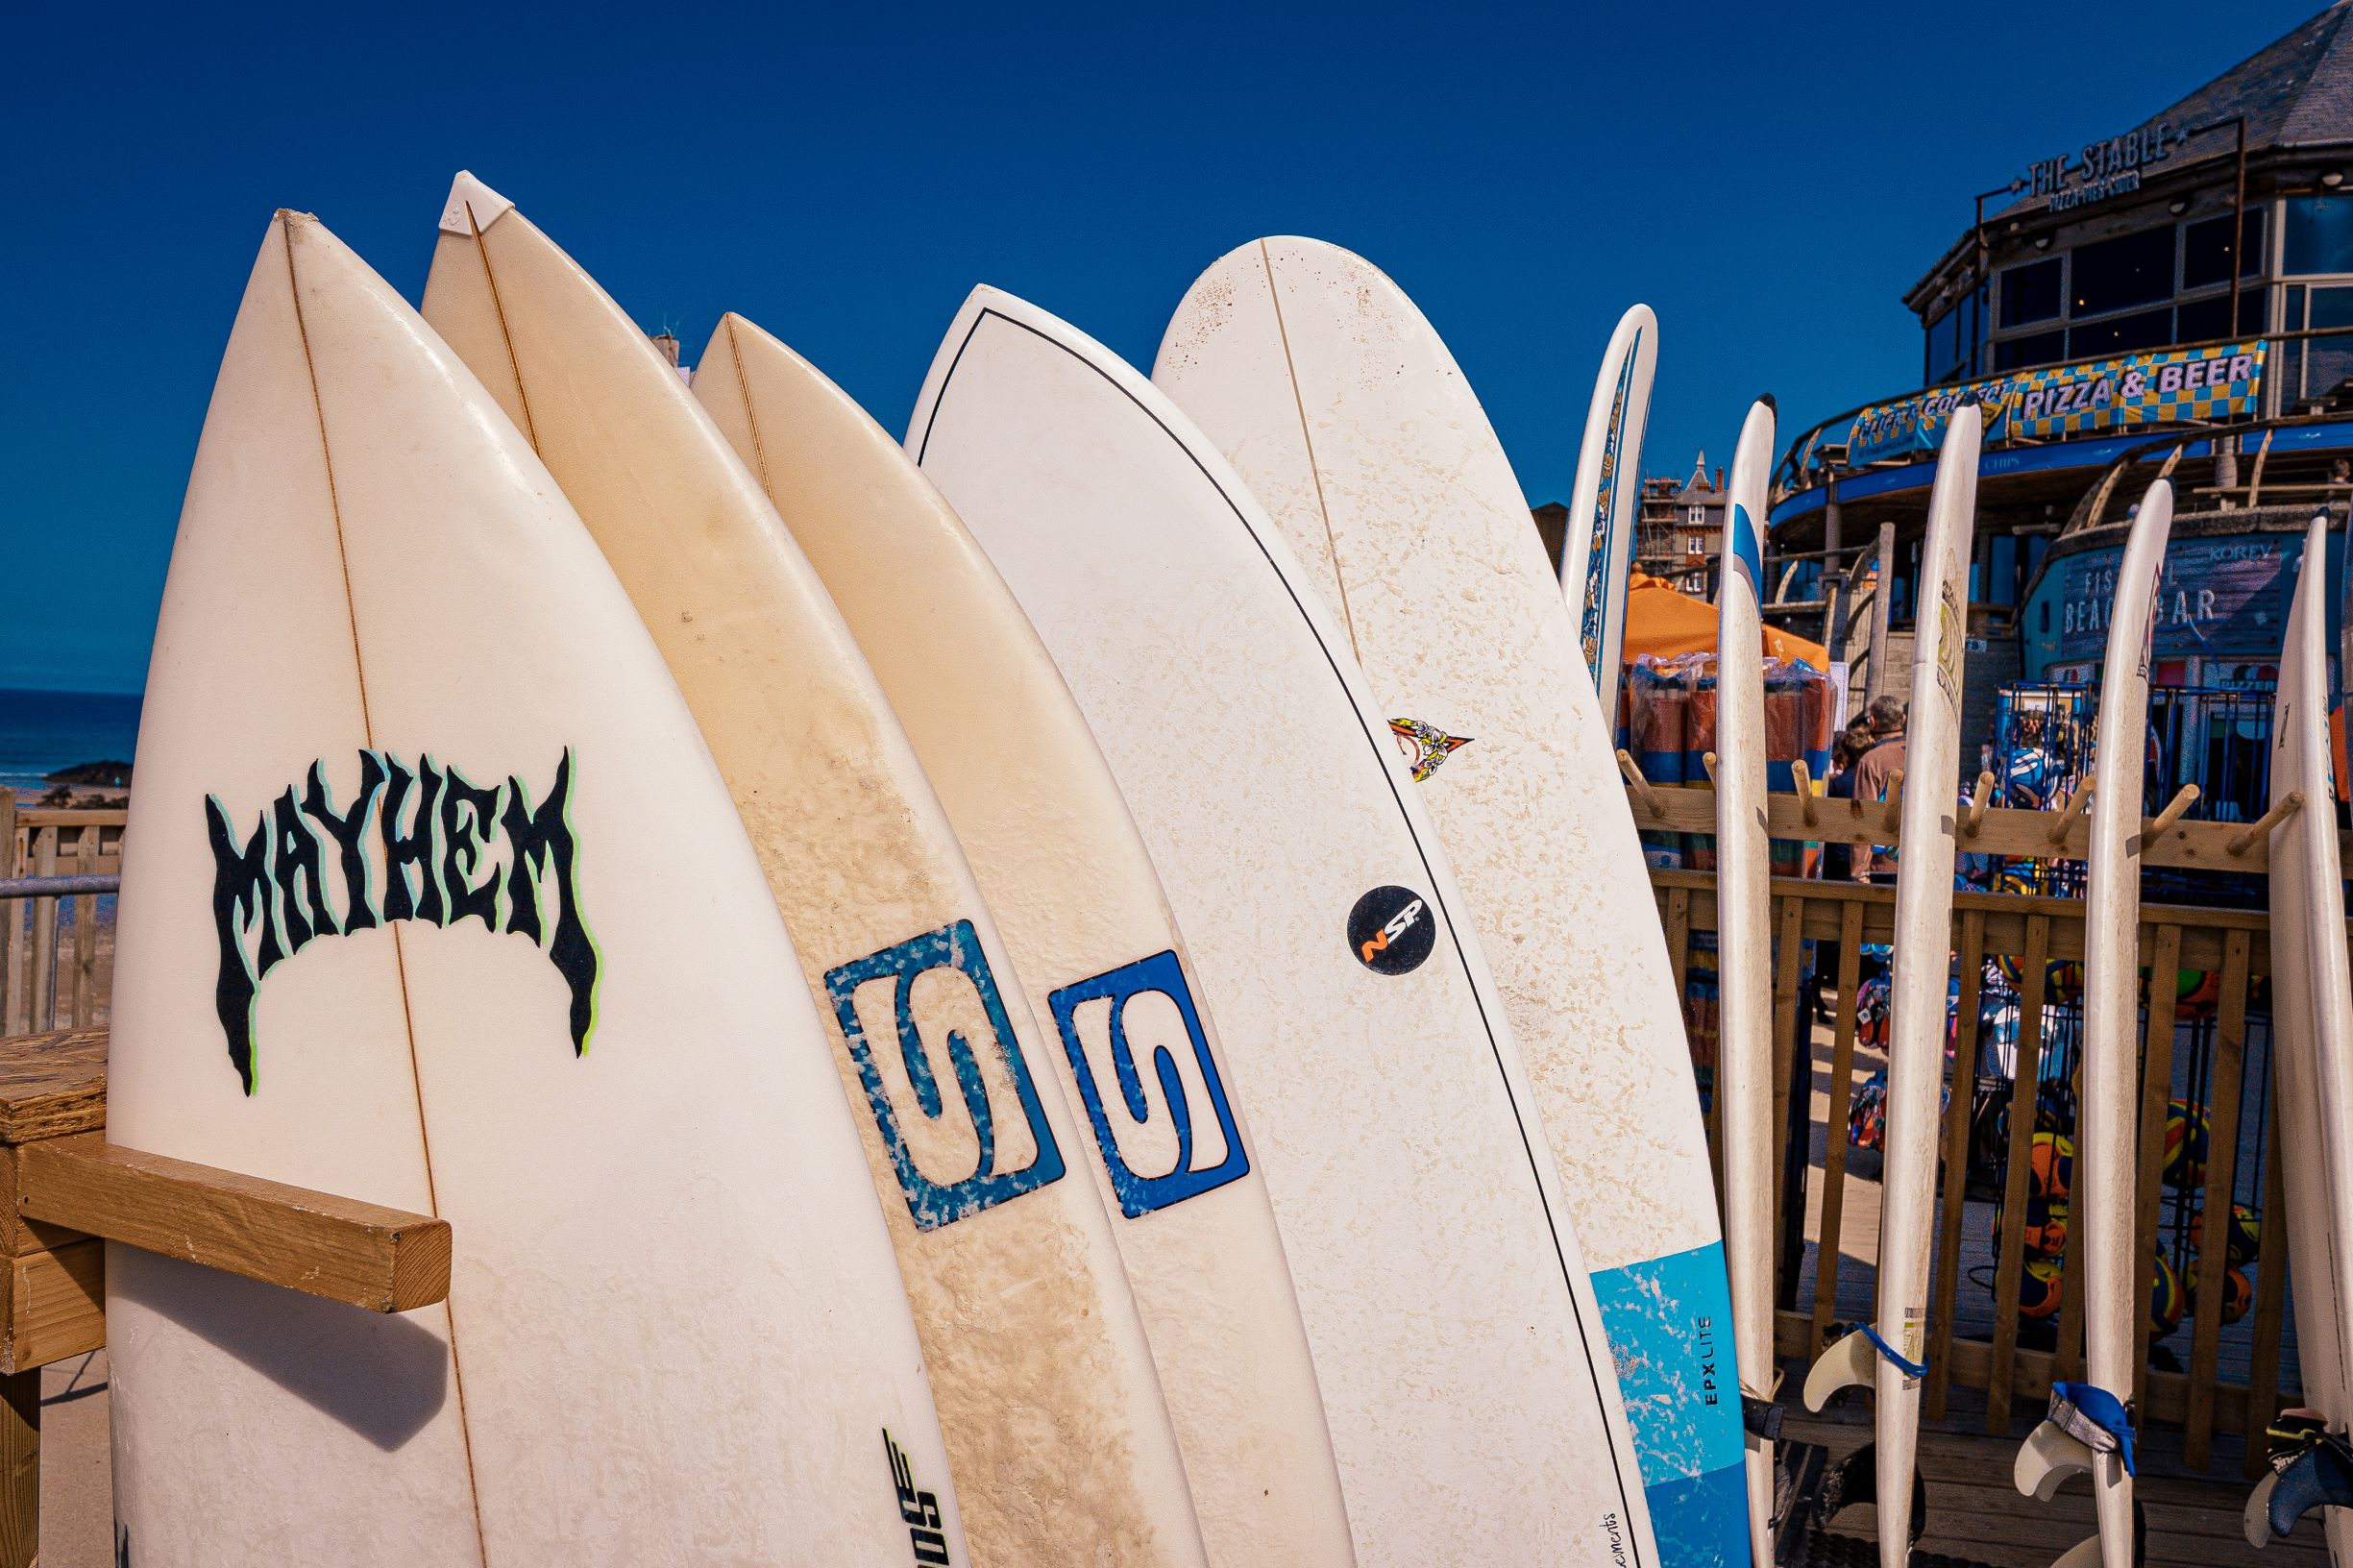 fistral-beach-surf-hire-boards